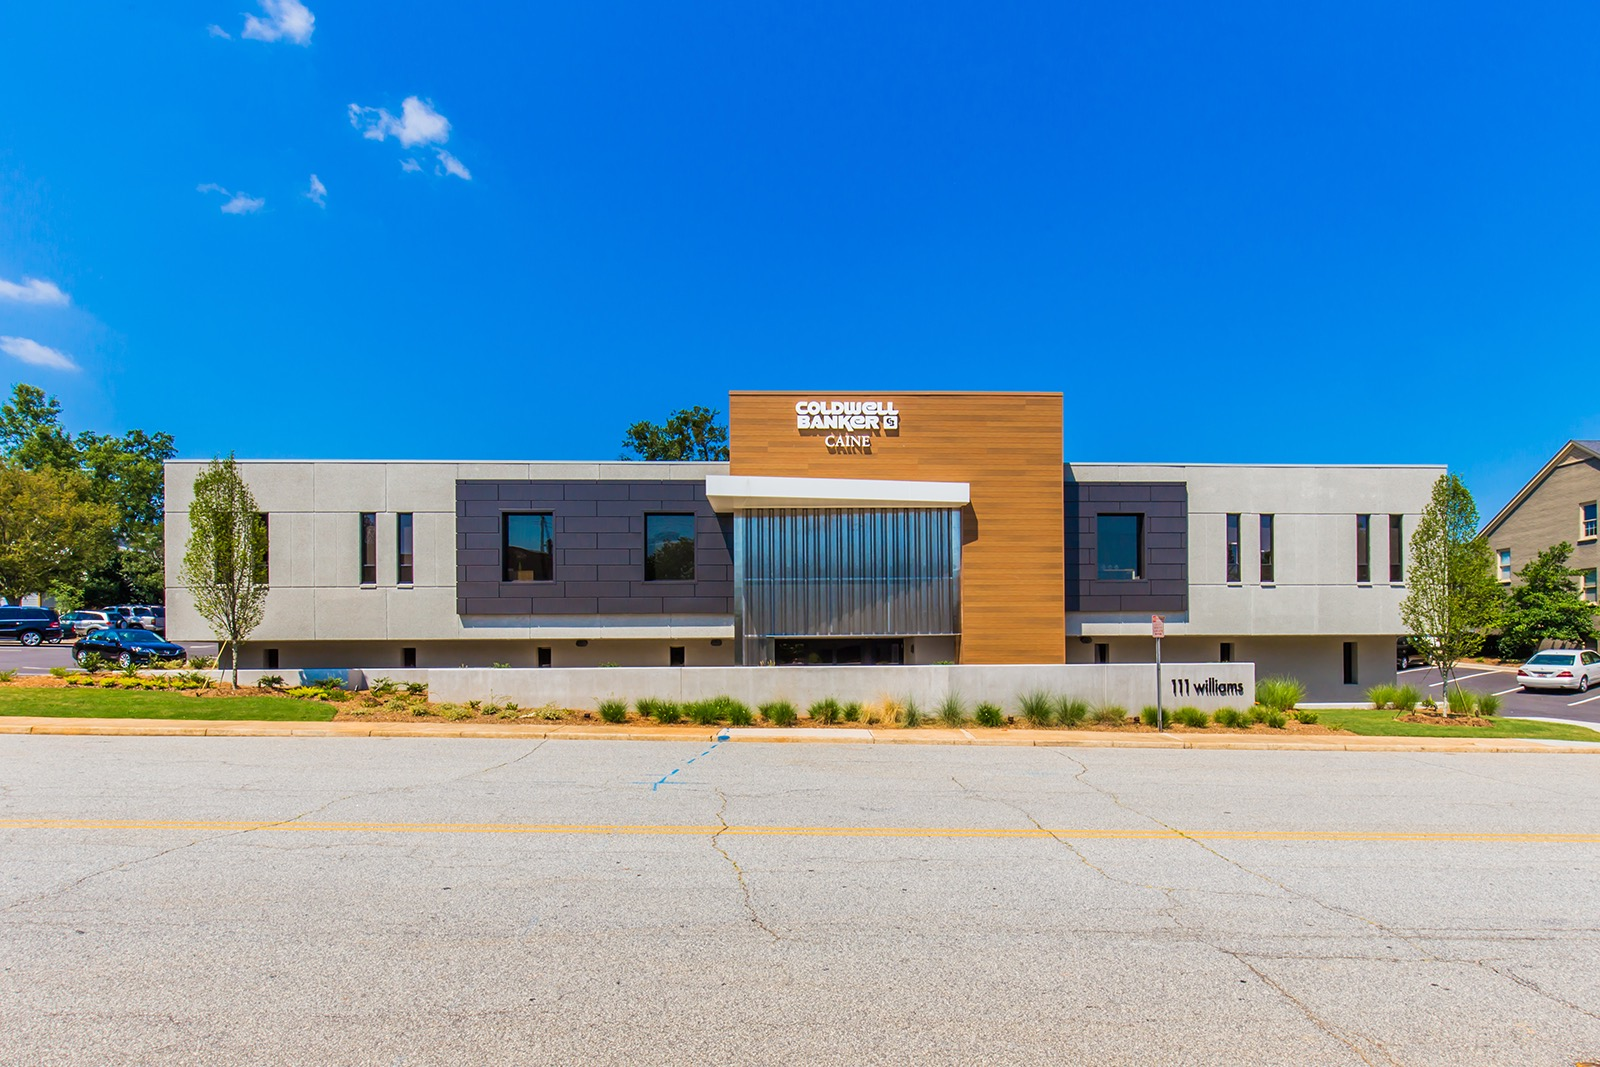 coldwell-bank-office-1